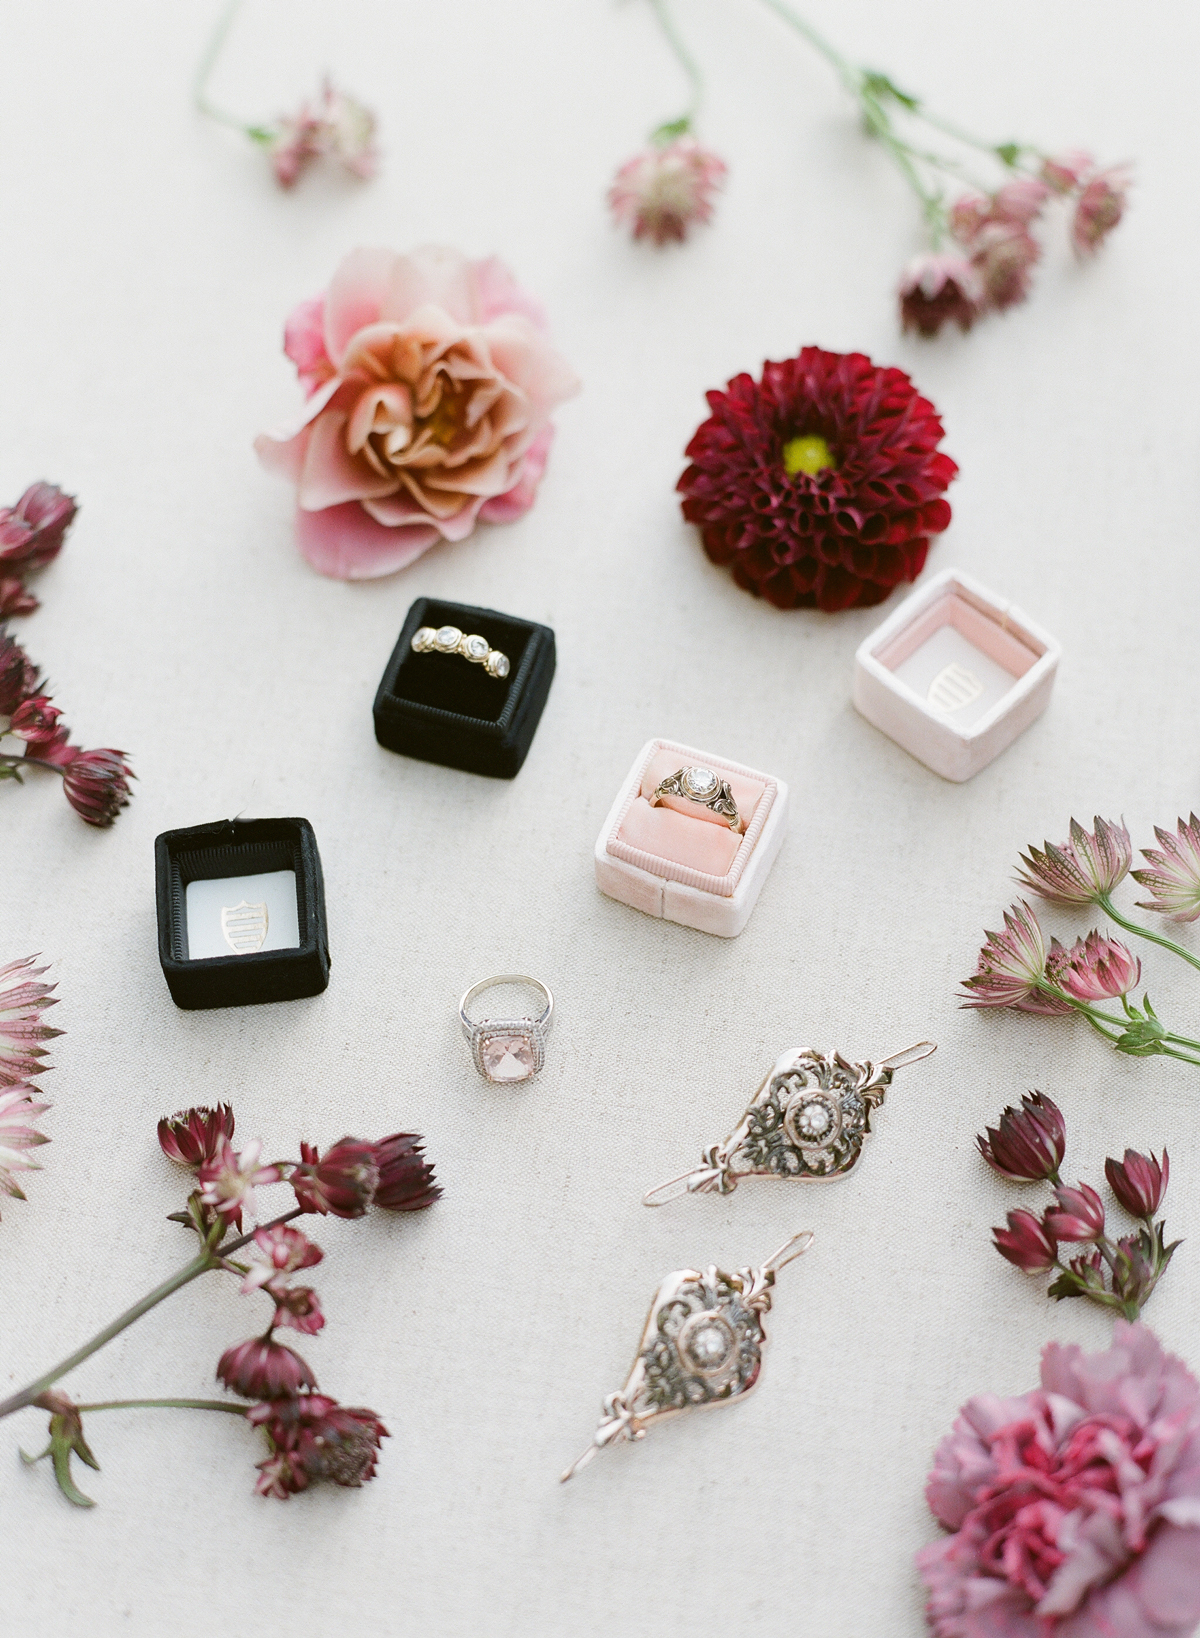 Heirloom earrings and diamond rings surrounded by flowers